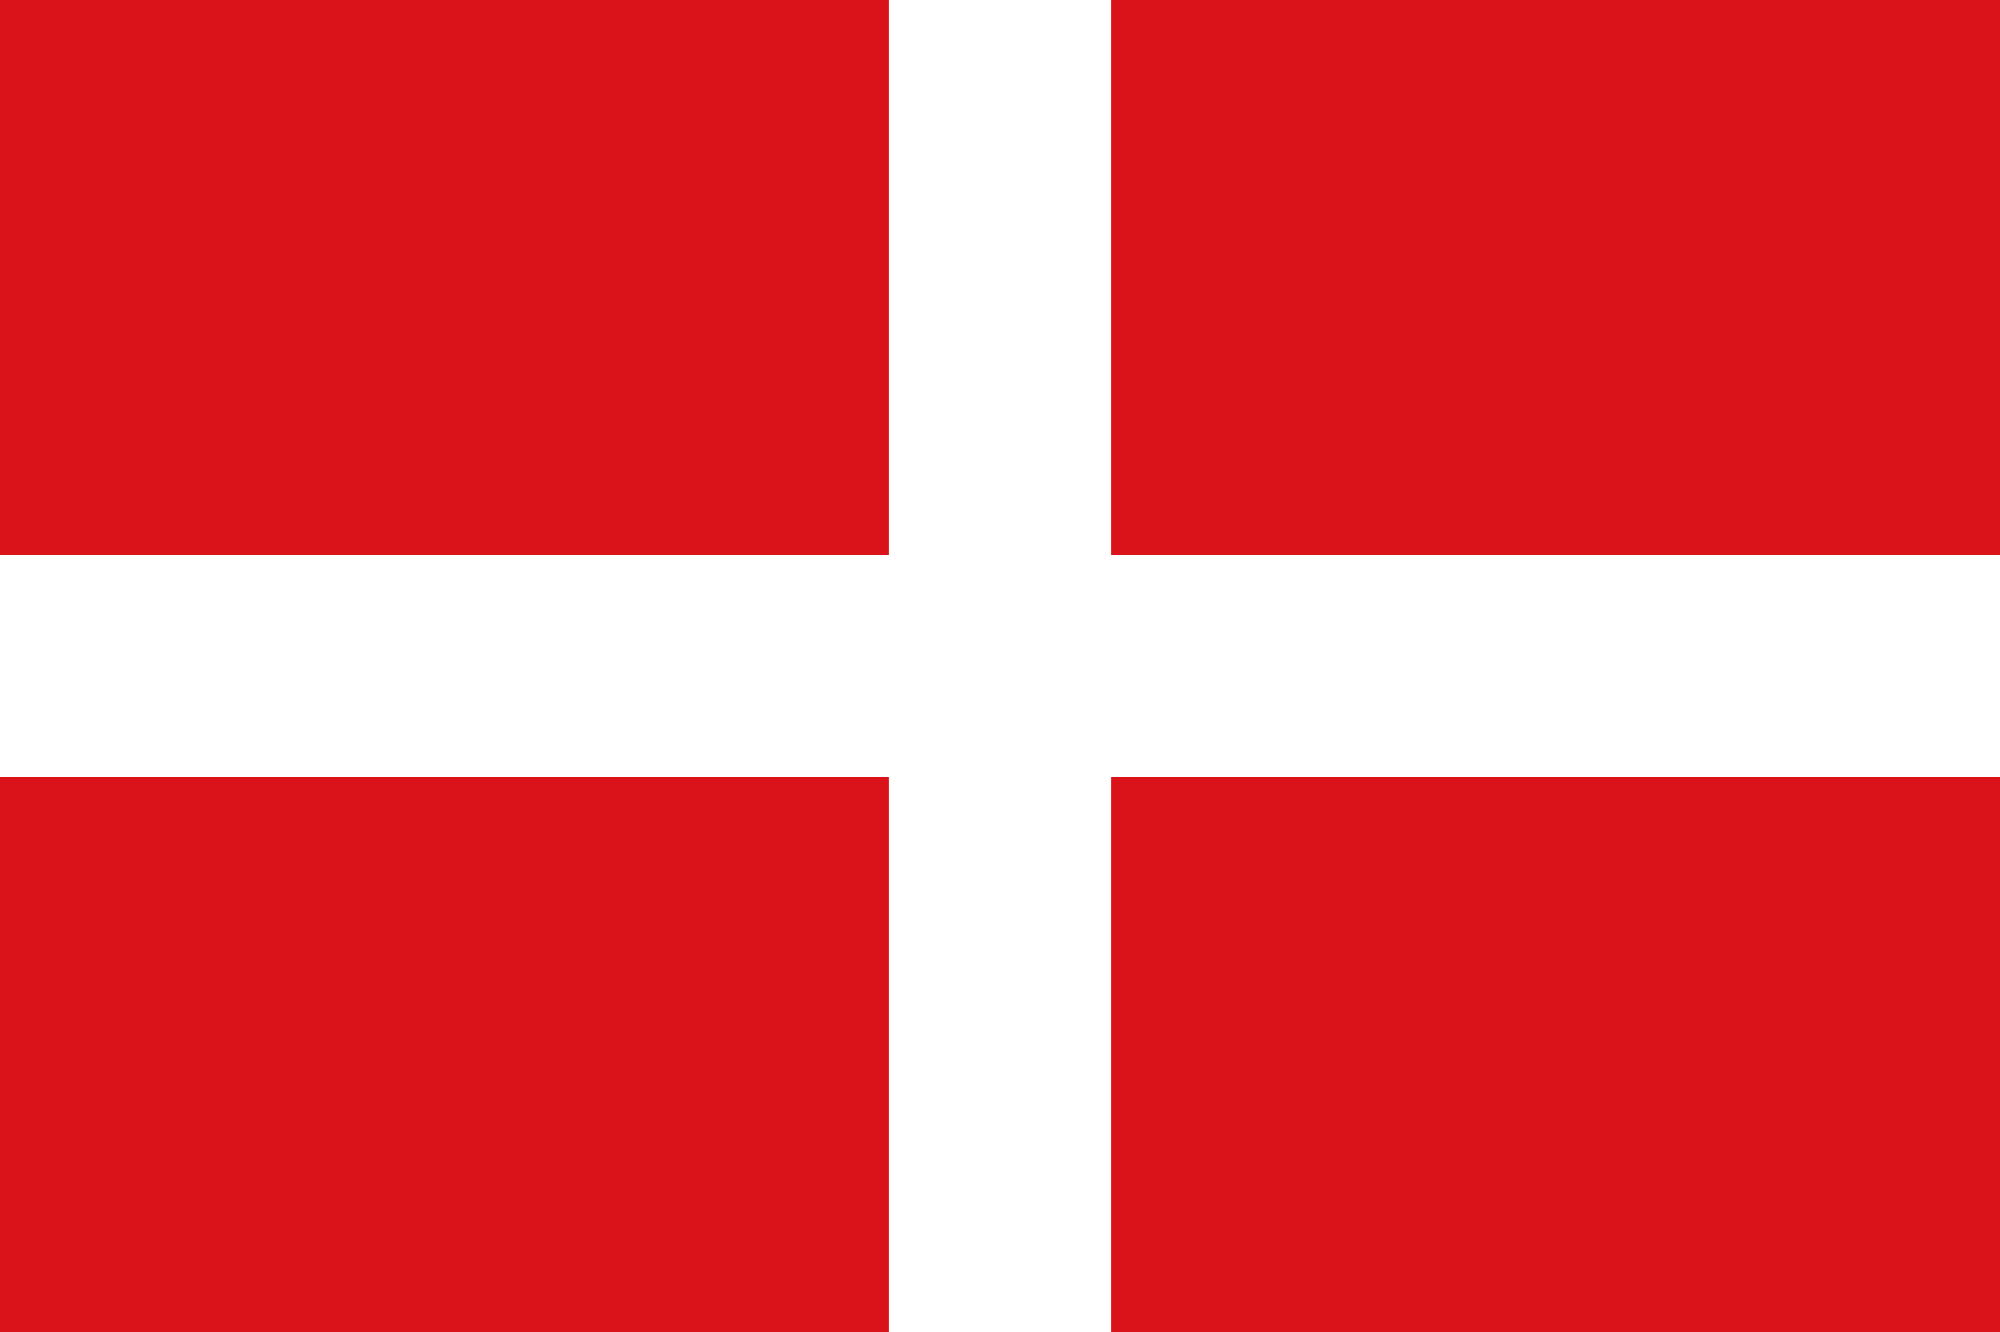 Flag of the Sovereign Military Order of Malta